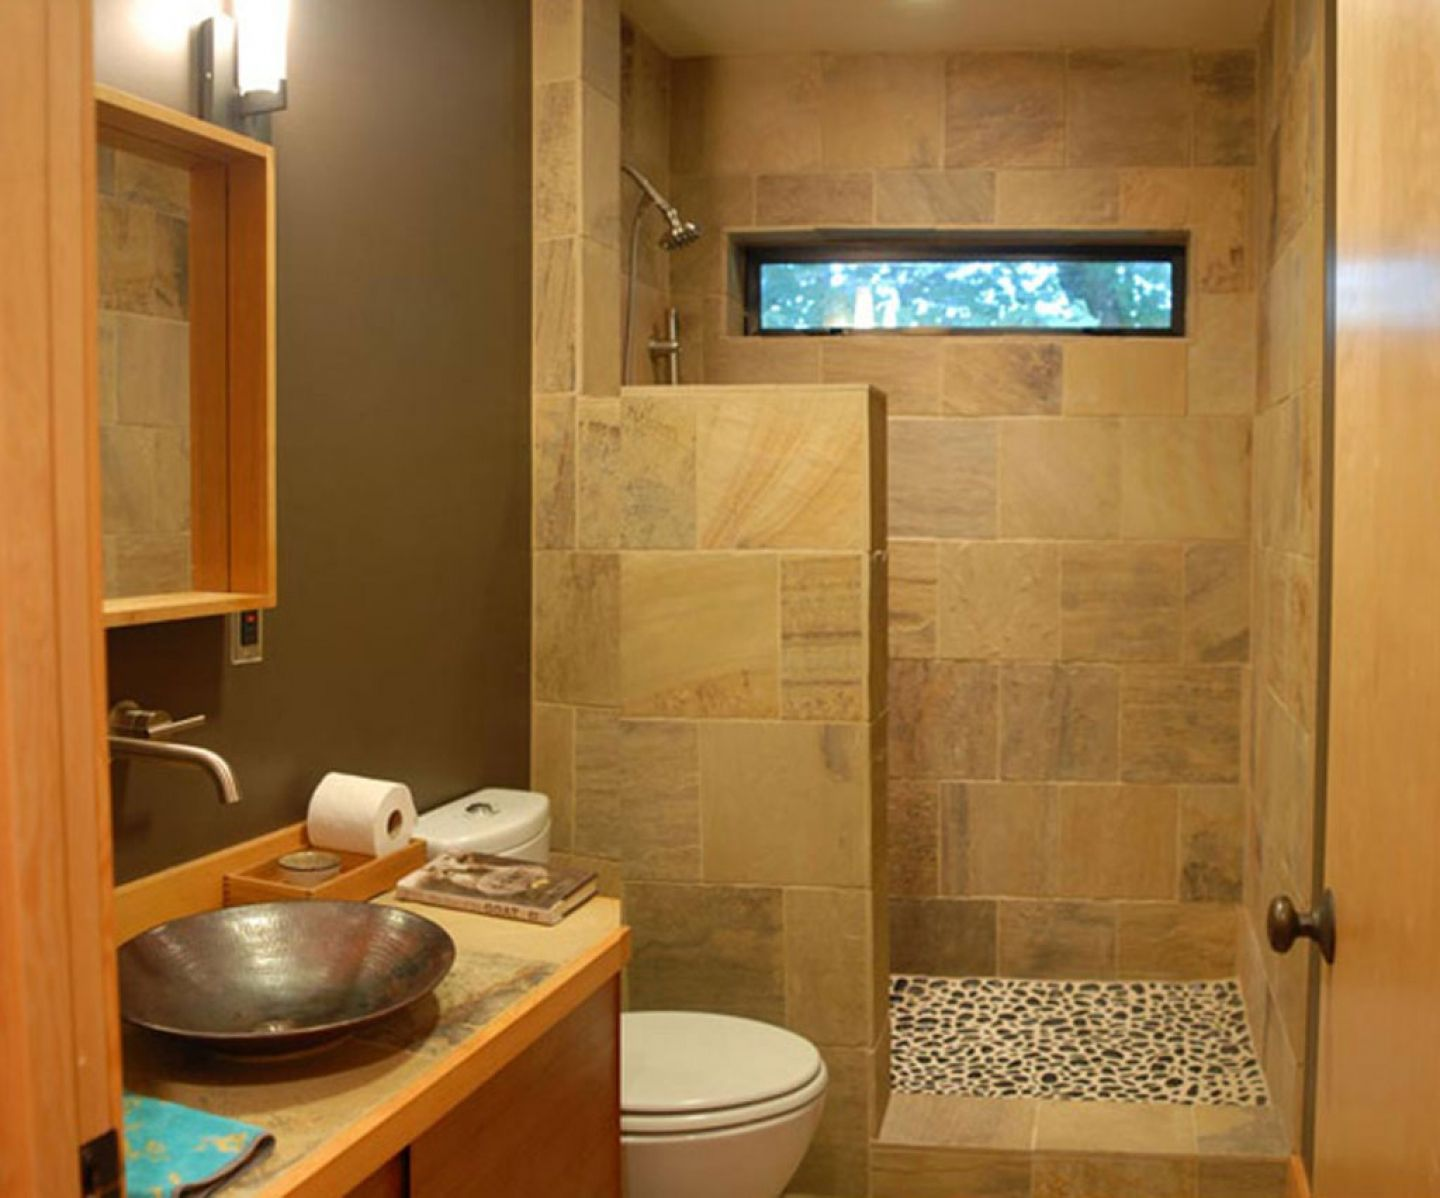 Cozy Small Bathroom Designs Inexpensive Bathroom Remodel Bathroom Design Small Simple Bathroom Remodel